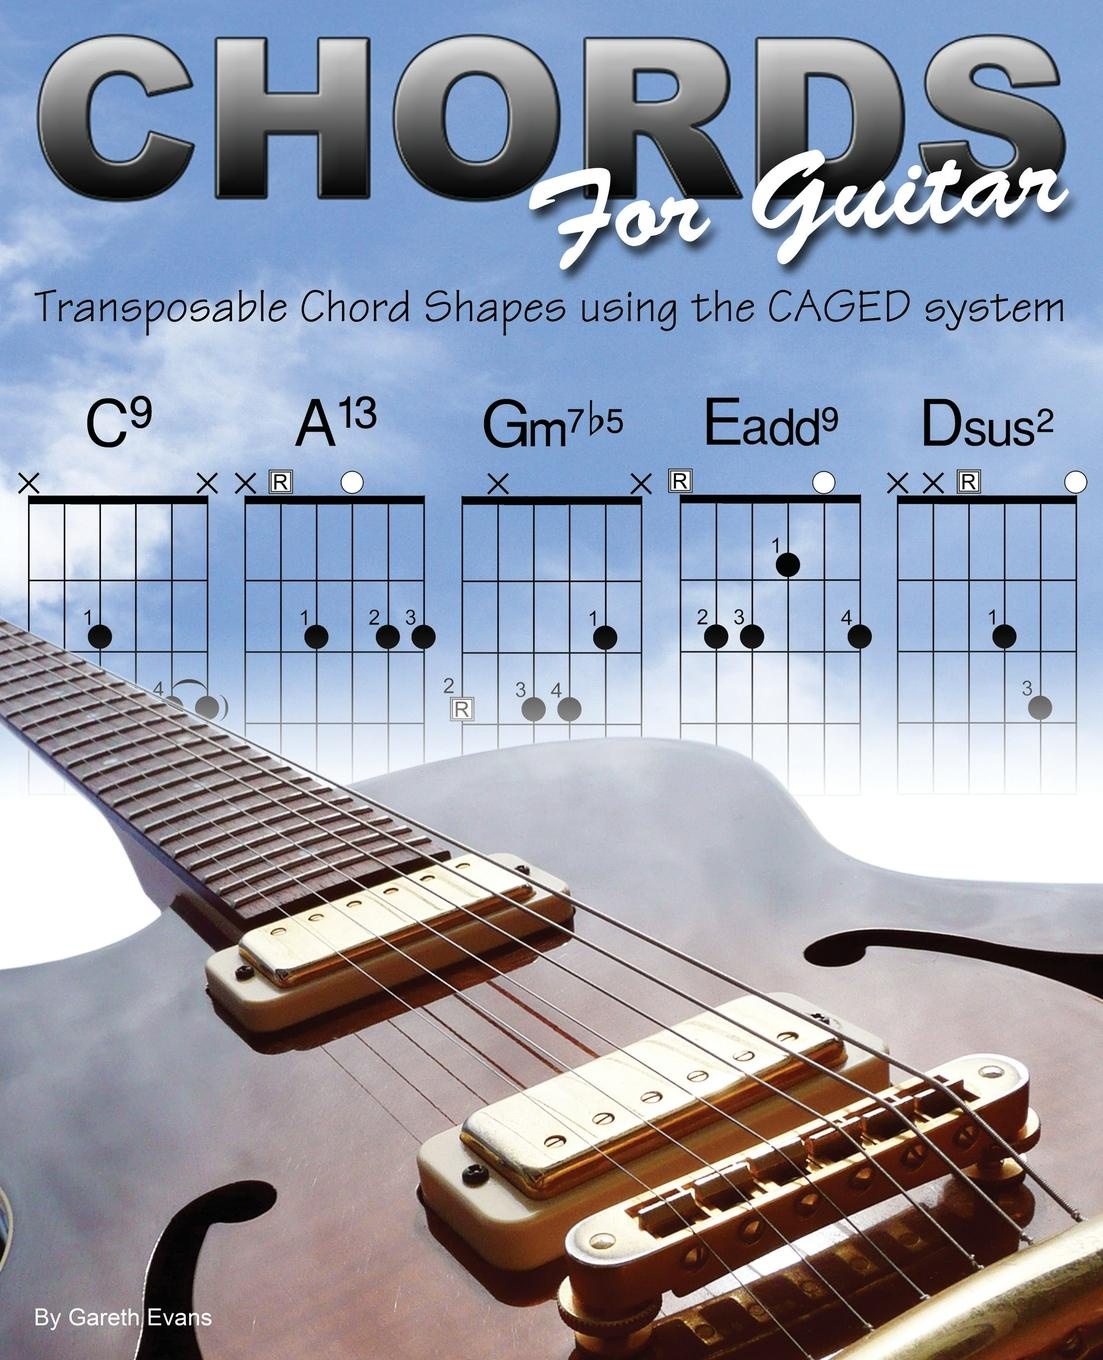 Gareth Evans Chords for Guitar. Transposable Chord Shapes using the CAGED System dan lupo guitar chords major 7 chords